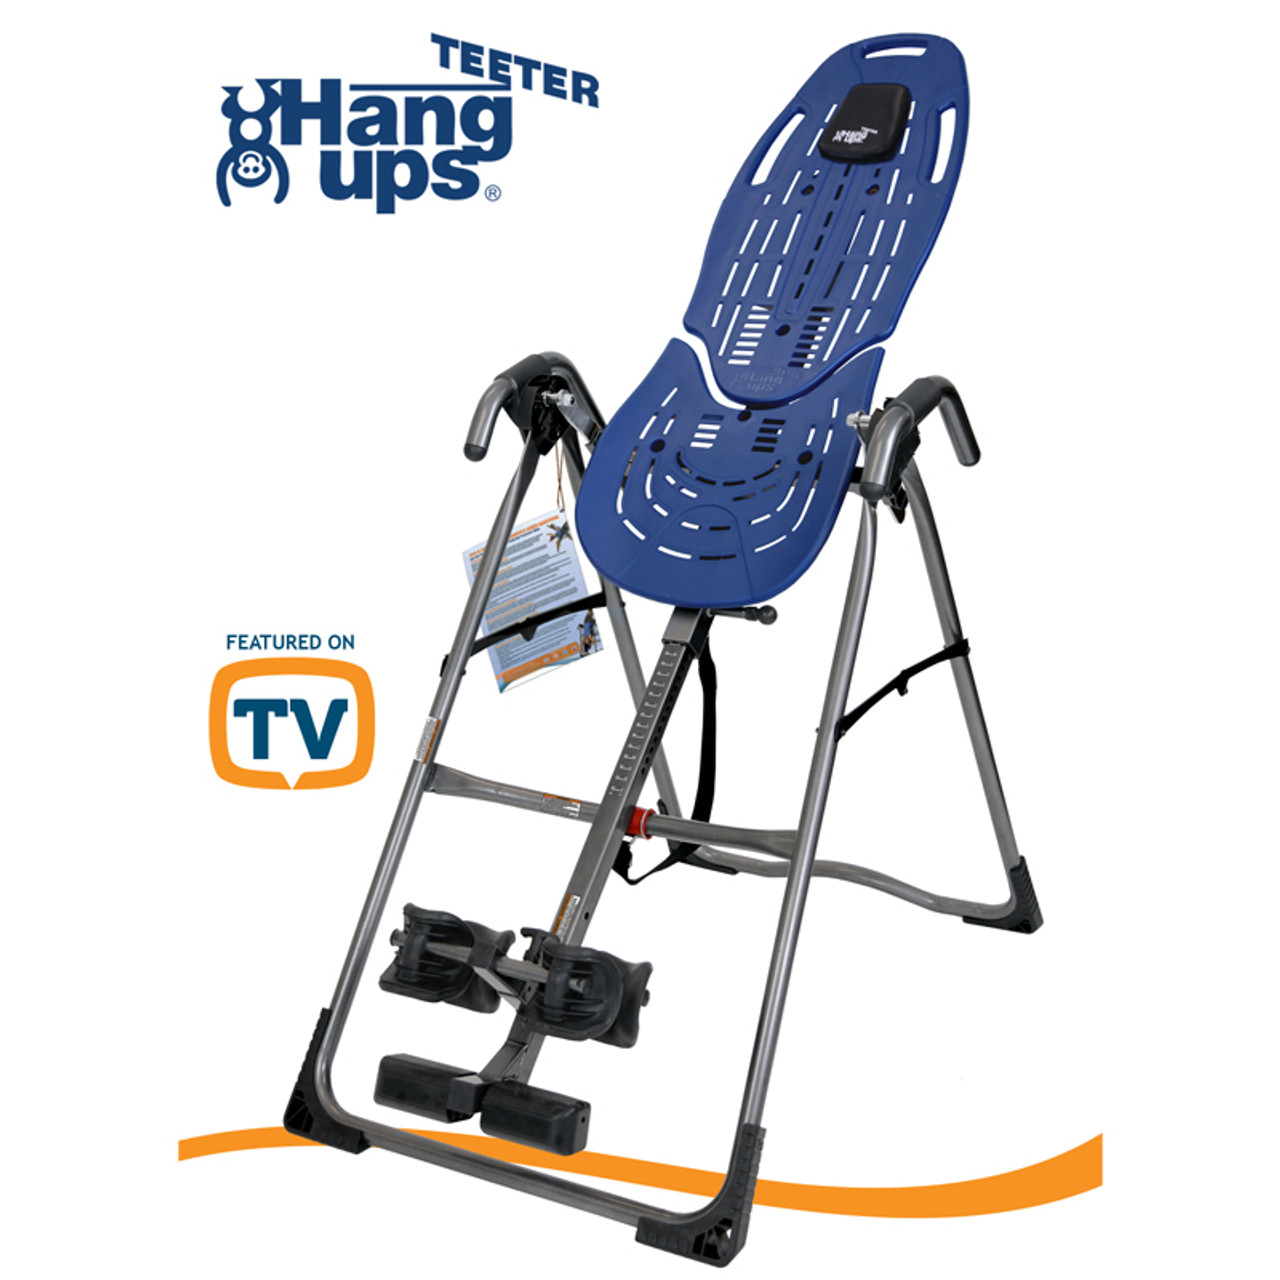 Teeter Ep 560 And Ep 560 Sport Inversion Tables